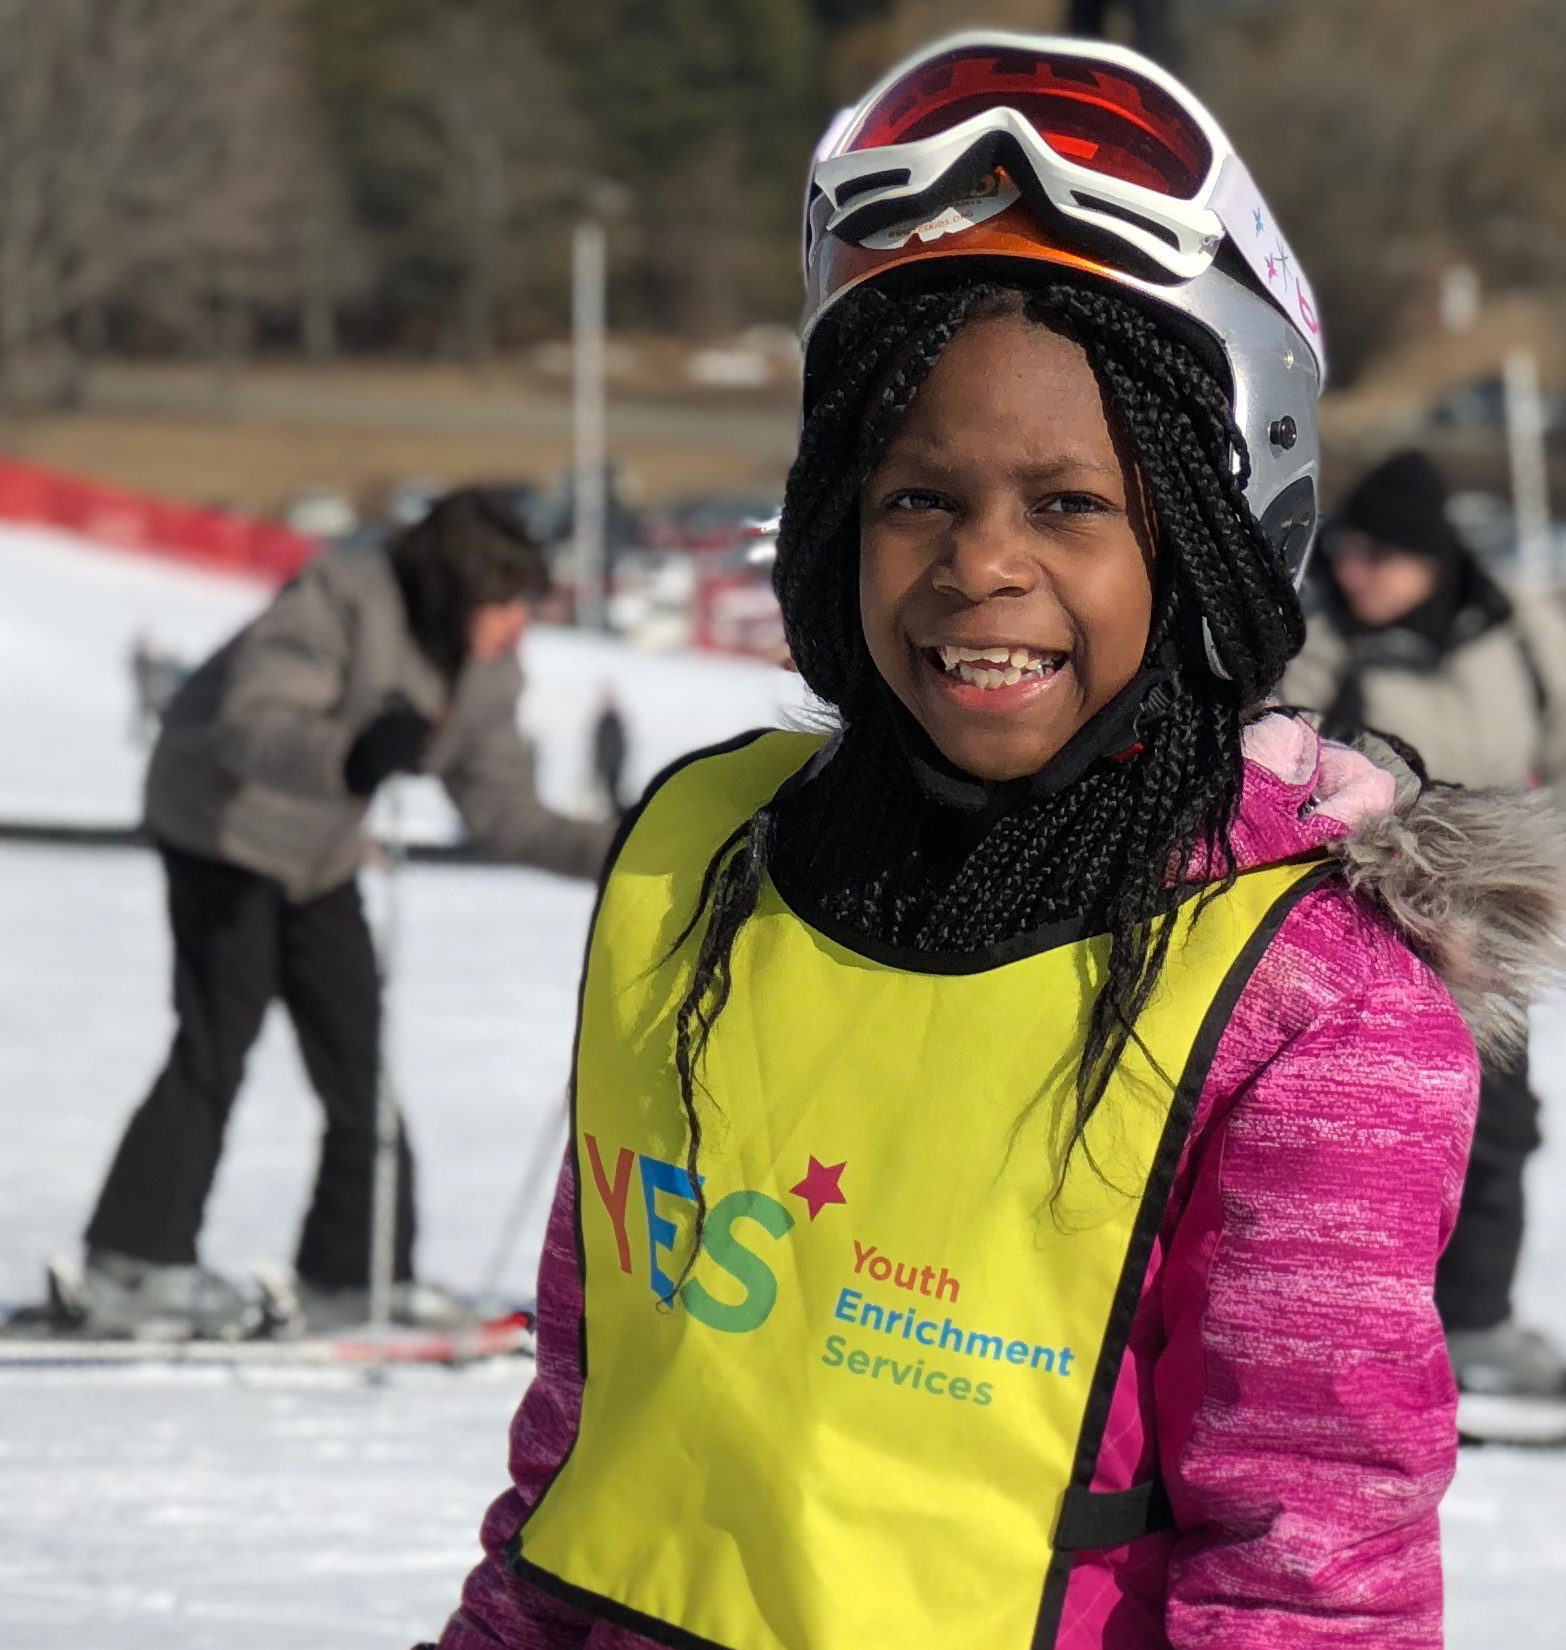 Share Winter Stats: - Winter 2018/19:16 program partners32,000+ Youth21 States60 Ski Areas159 School Based ProgramsWinter 2017/18:12 program partners30,000+ youth20 states8 ski areas172 School Based ProgramsWinter 2016/17:5 program partners13,000+ youth7 states4 Ski Areas65 school based programs